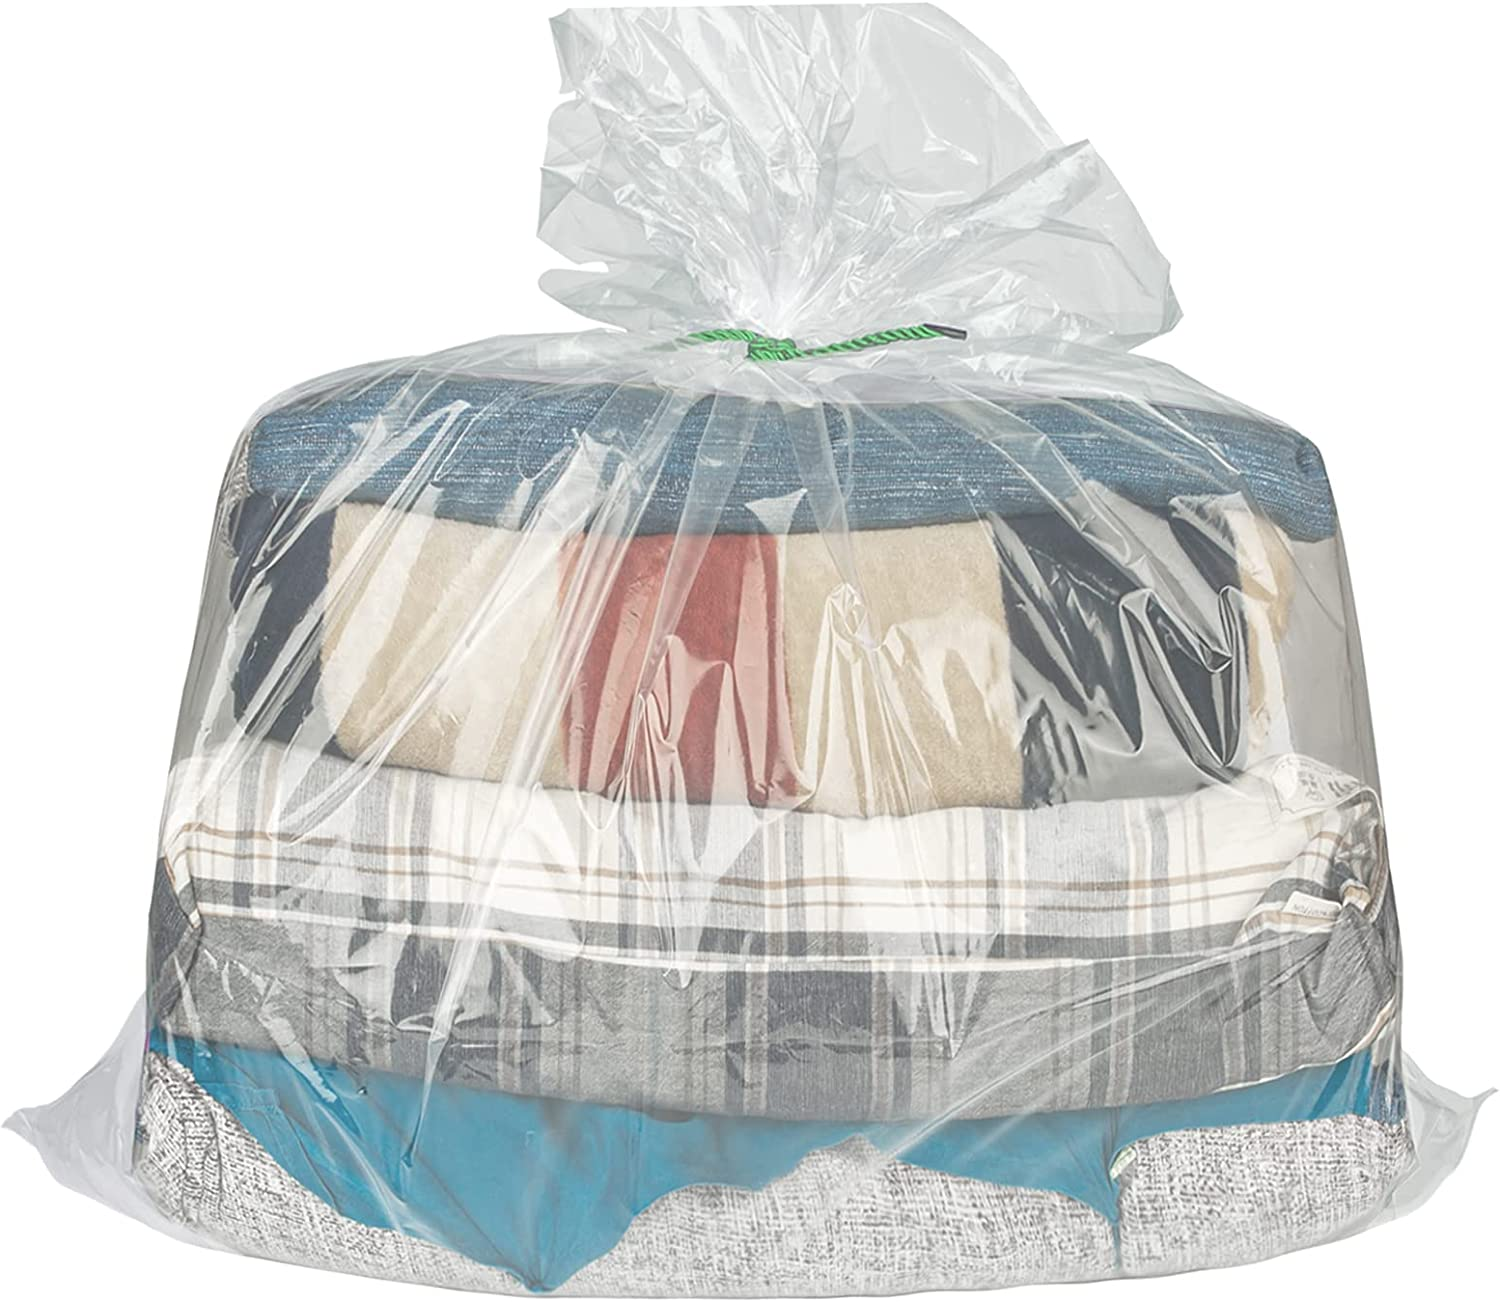 Overmonup 31x39 inches Surprise price Save money clear plastic perfect storage bags du for